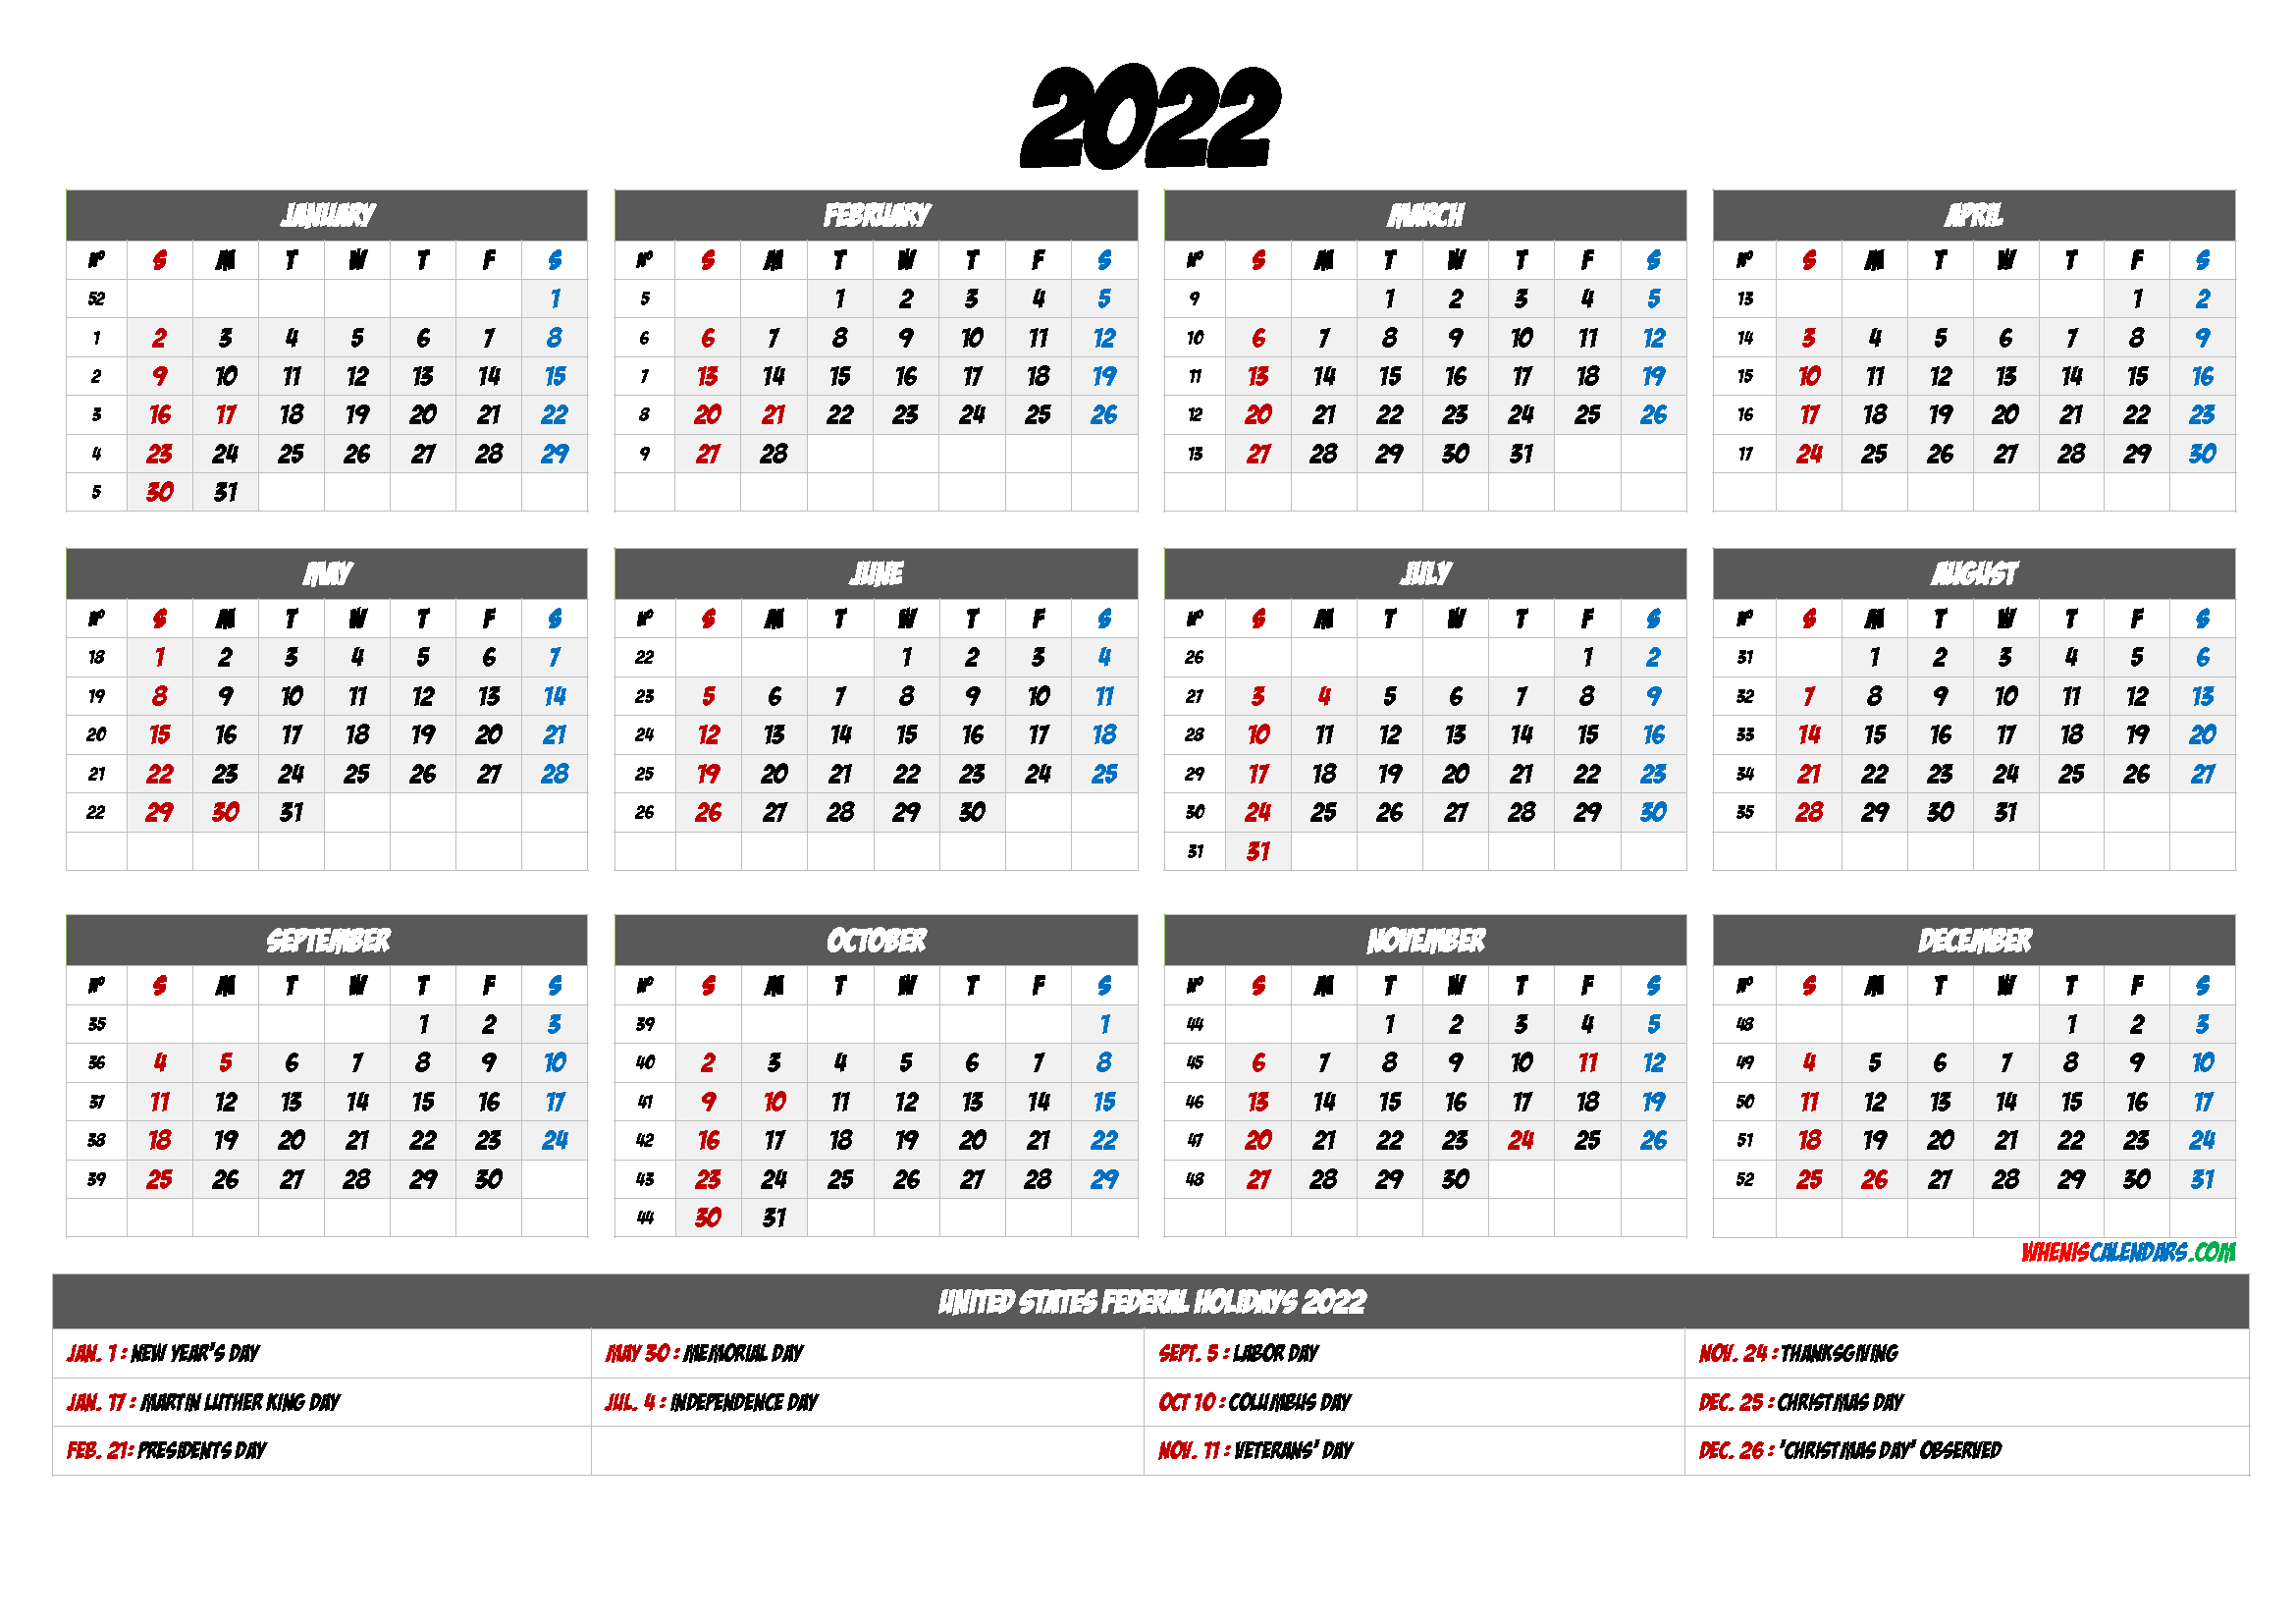 20+ 2022 Calendar With Holidays Printable - Free Download with January 2022 Free Month At A Glance Planner.pdf Photo